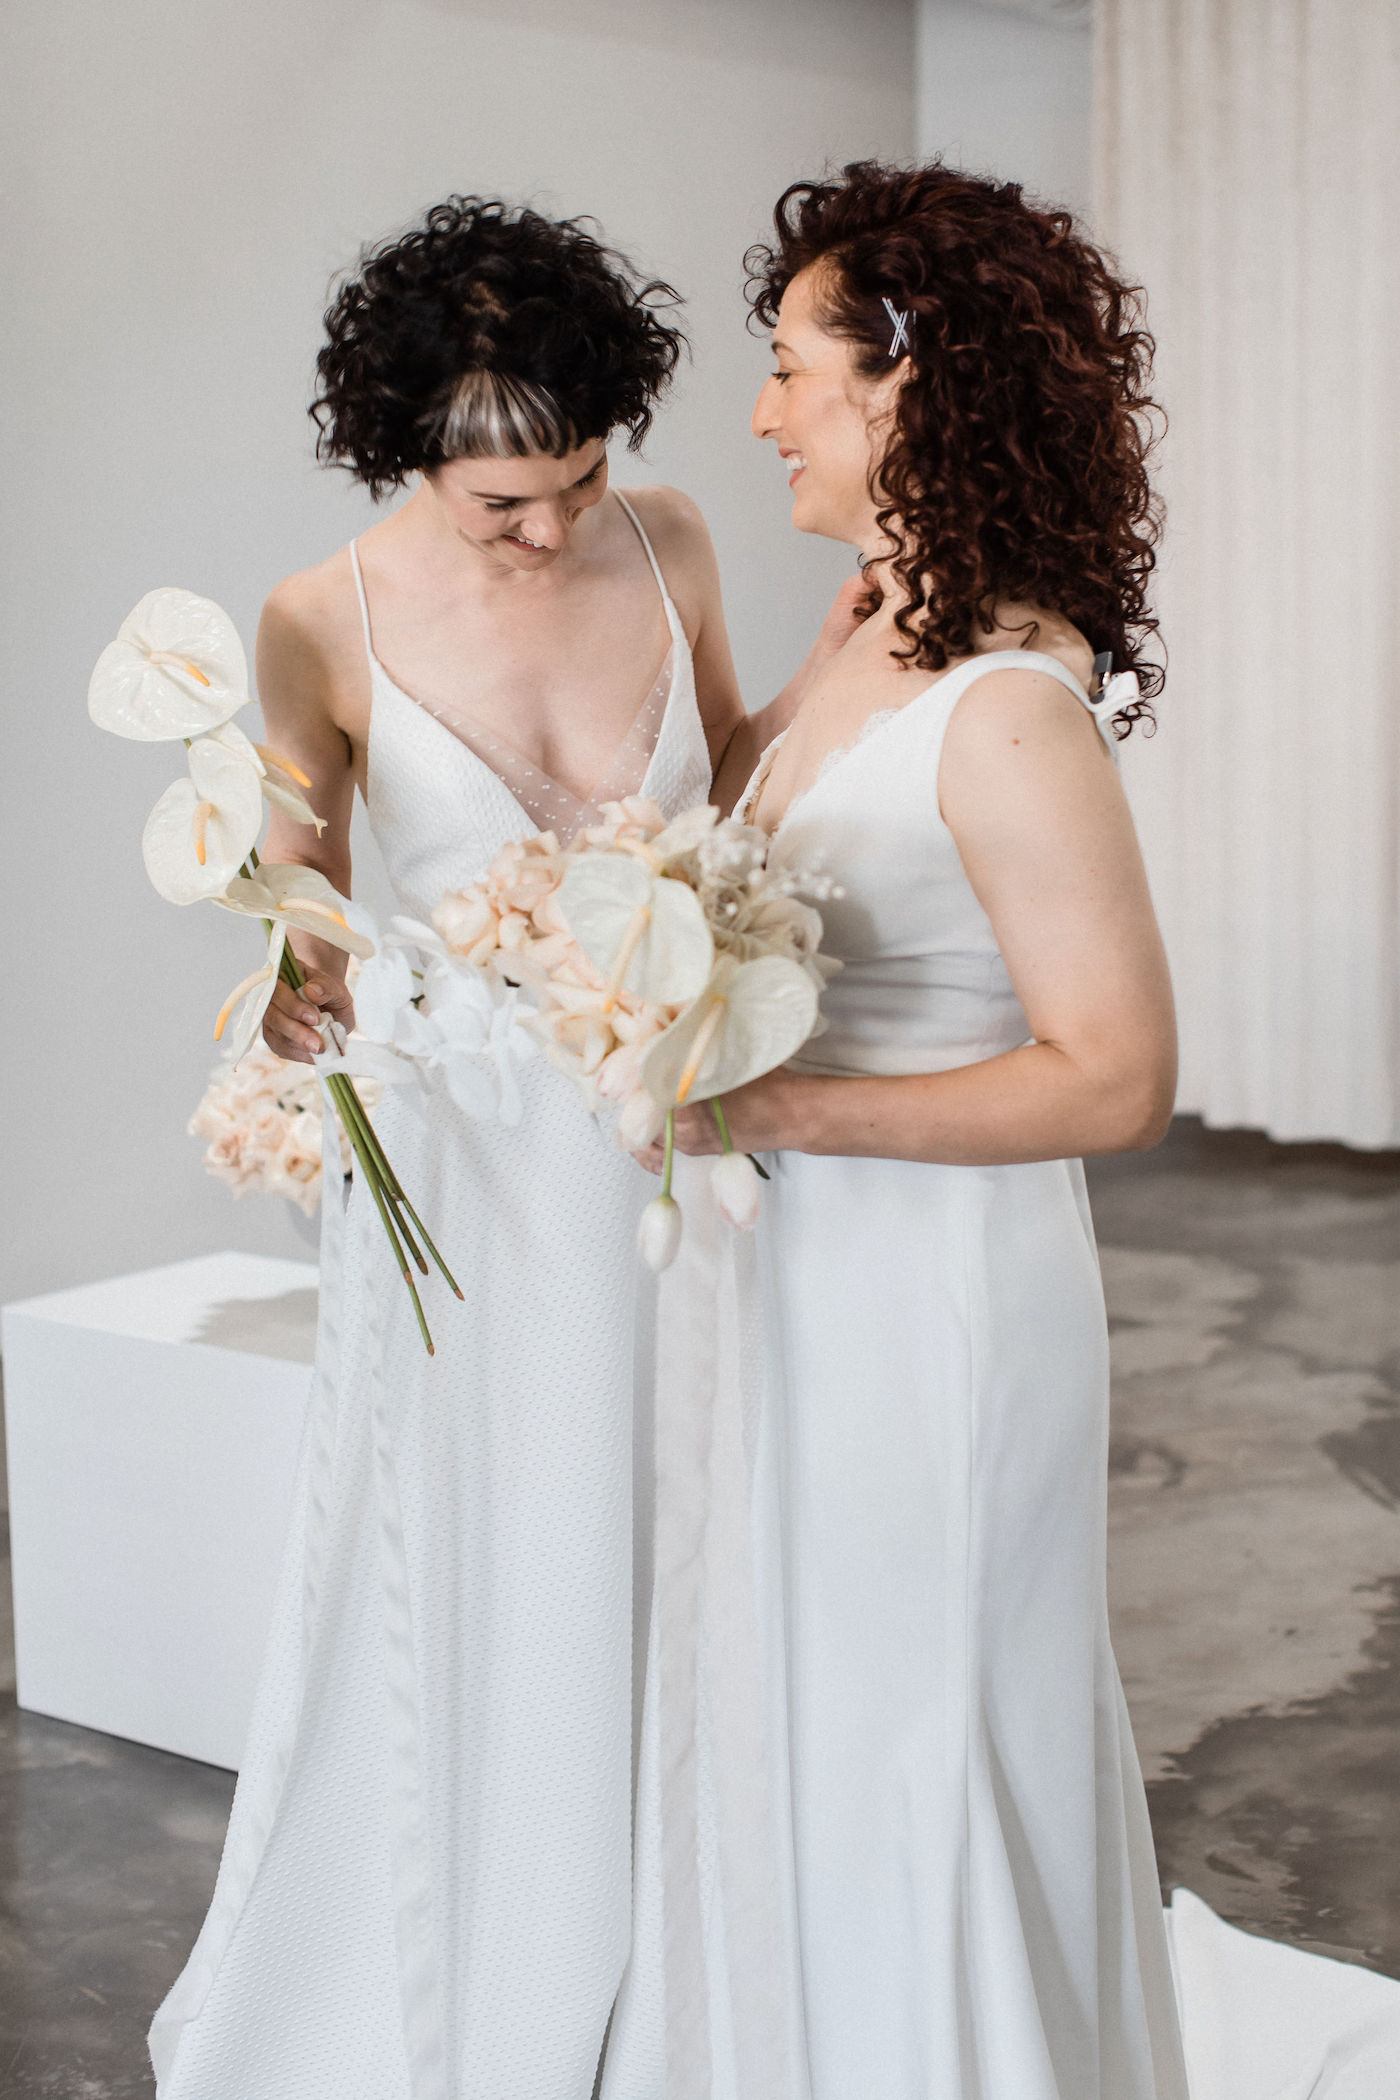 lgbtq wedding las vegas elopement sure thing chapel00001.jpg